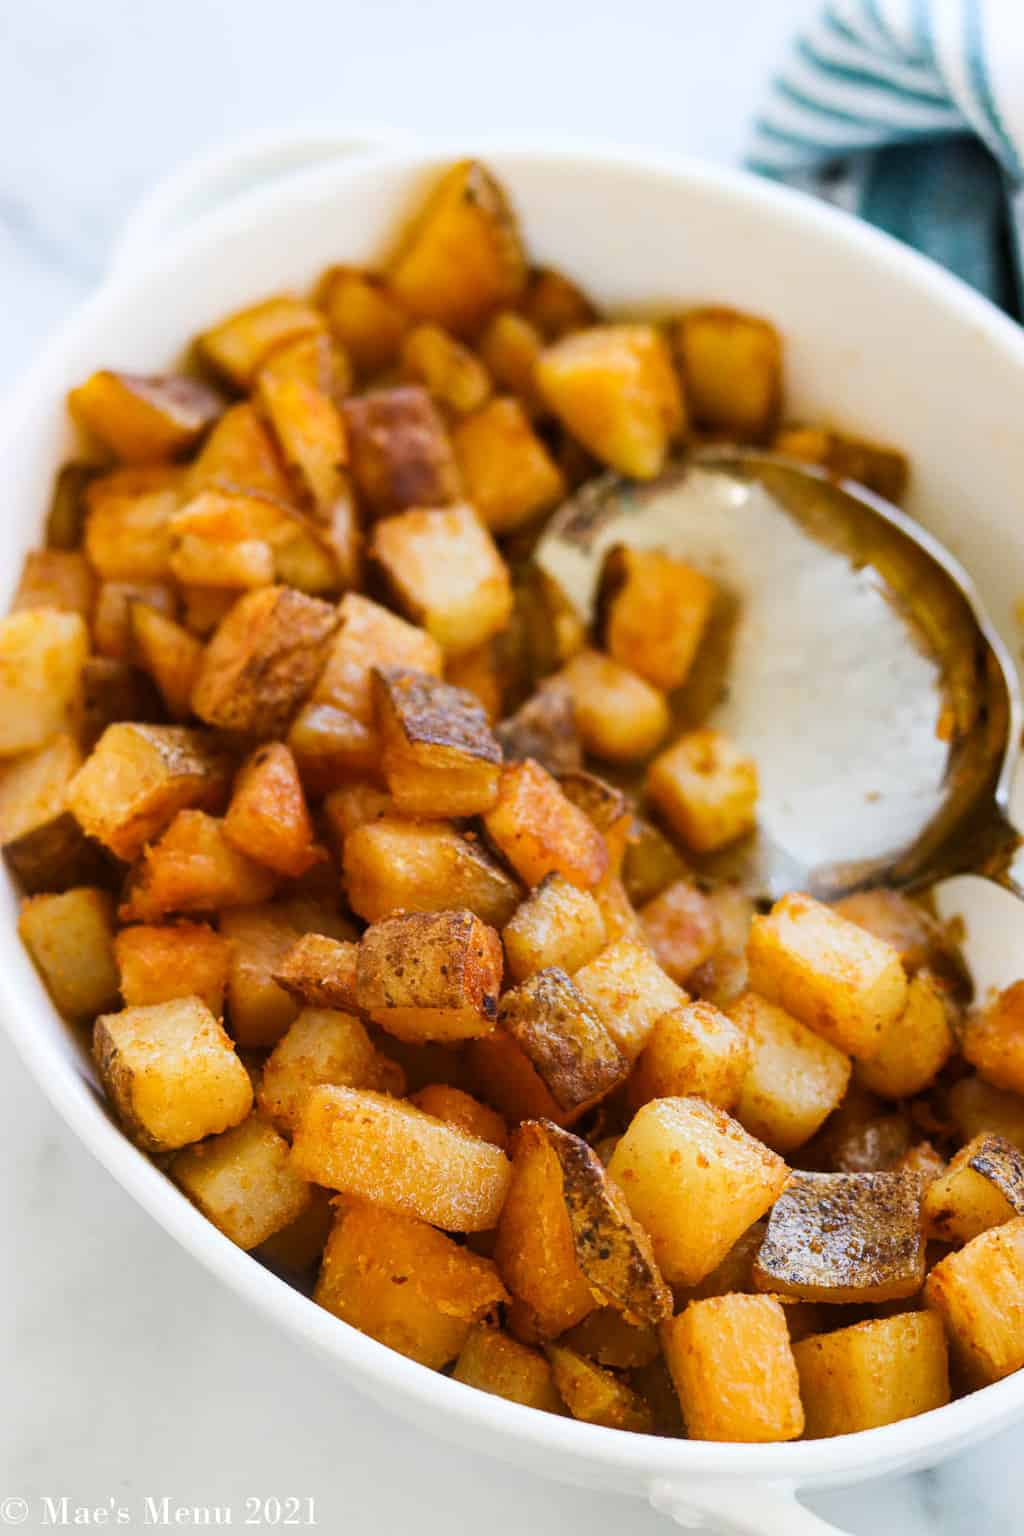 A dish of home fries with a large serving spoon in it